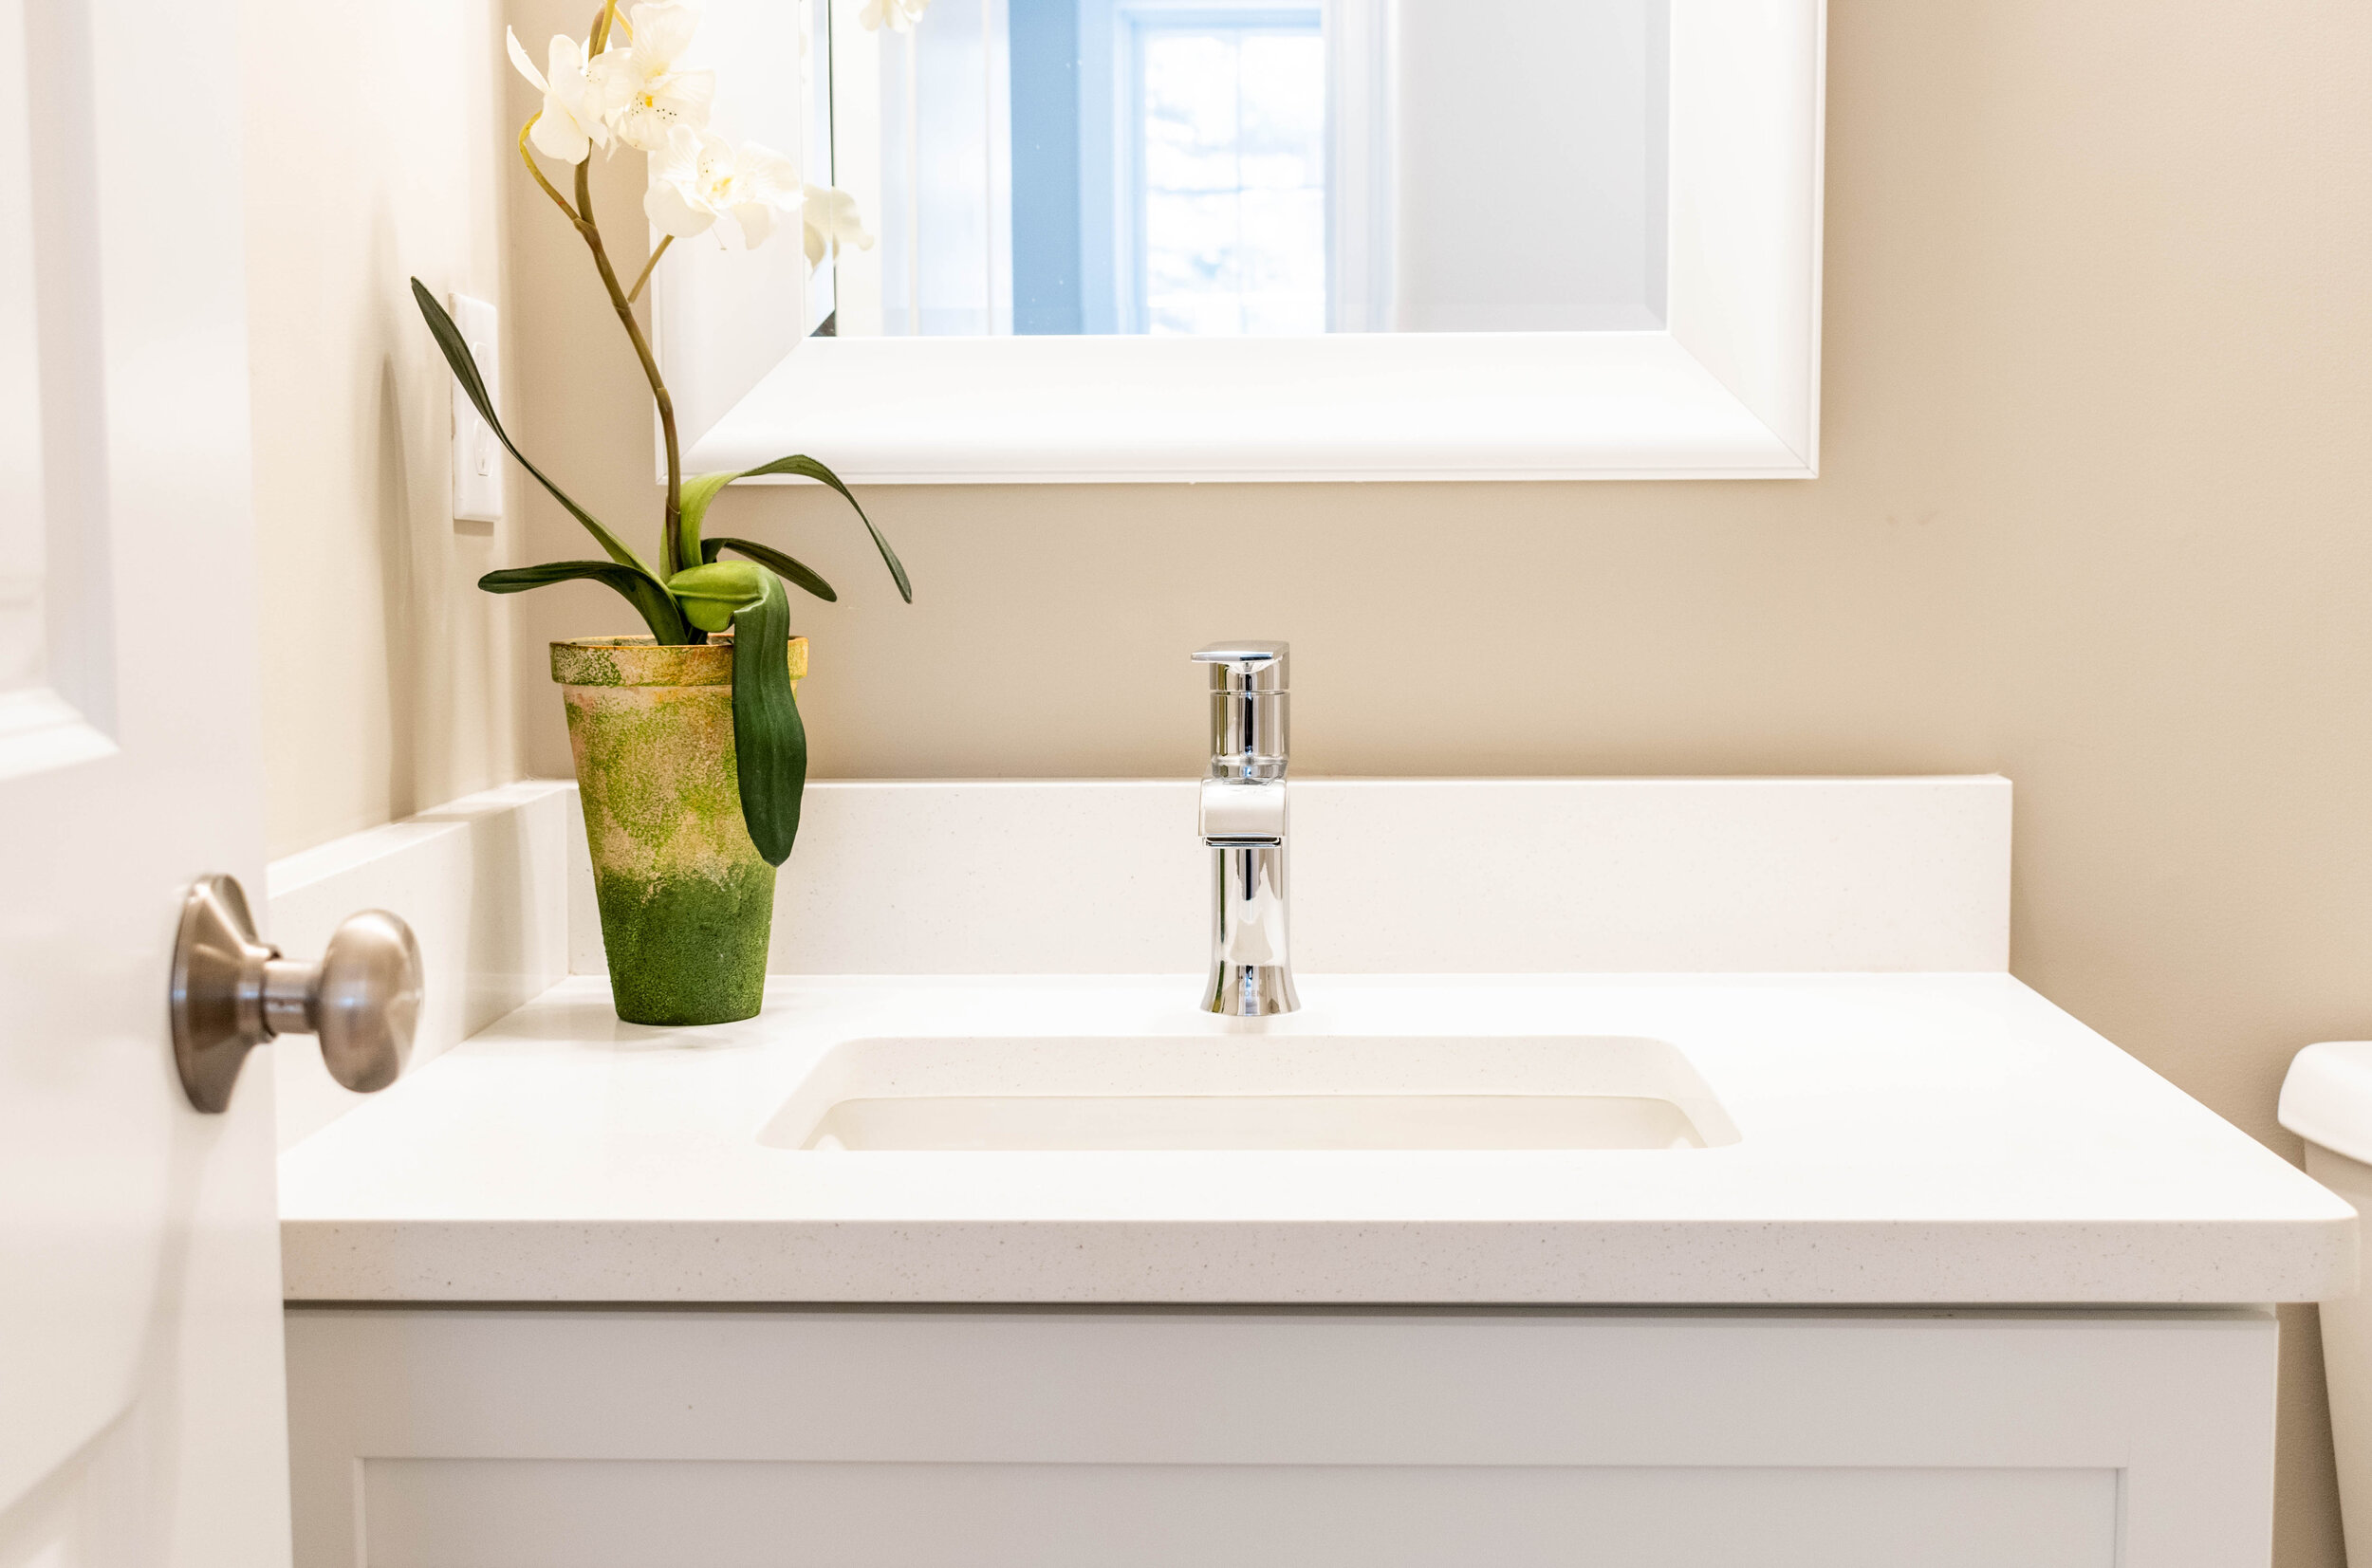 Material: Q-MSI Stellar White  Thickness, Finish & Stone Type: 3CM Polished Quartz  Edge: Eased  Sink: KP-22W